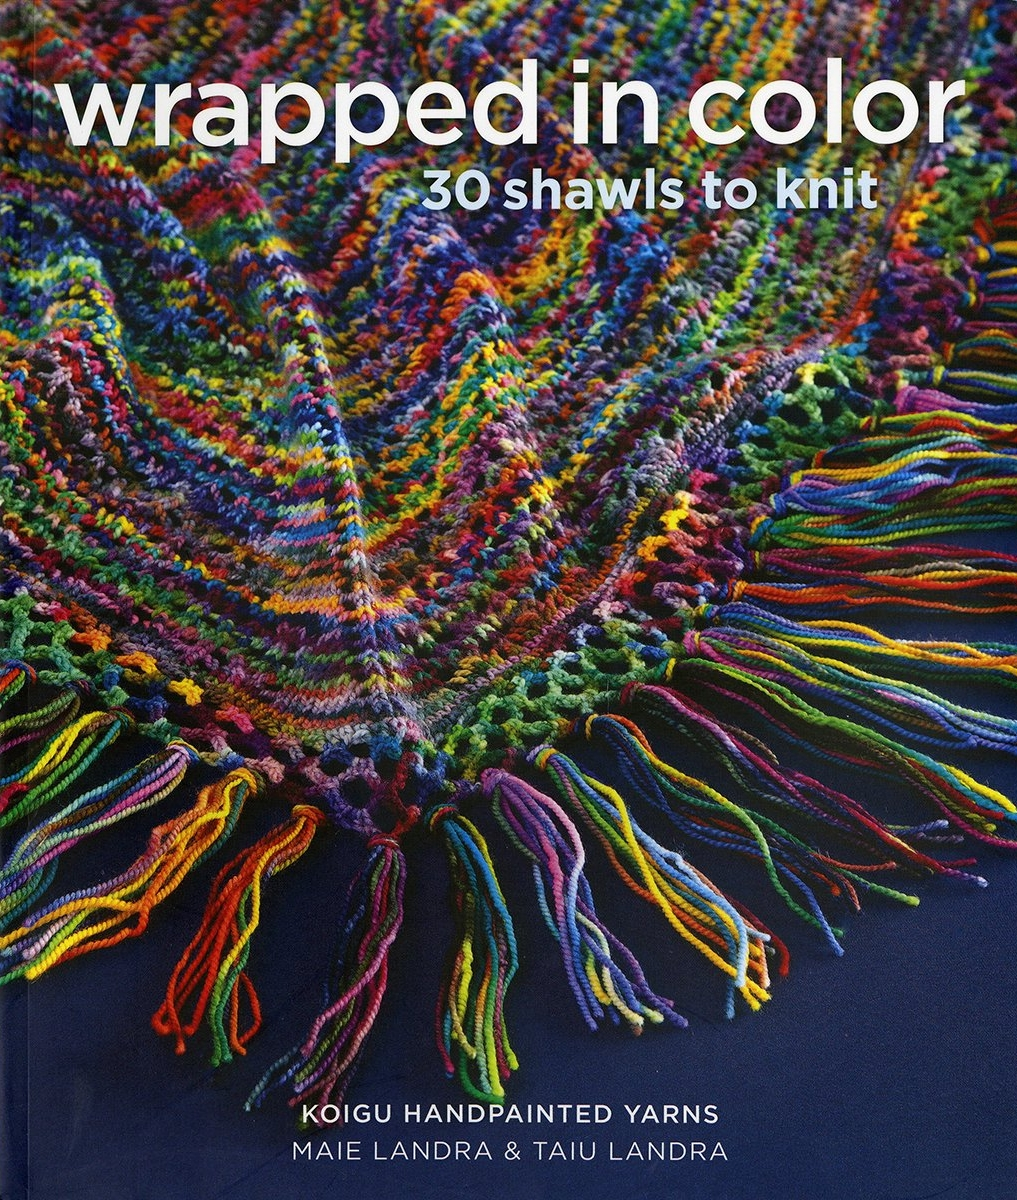 Wrapped in color.jpg